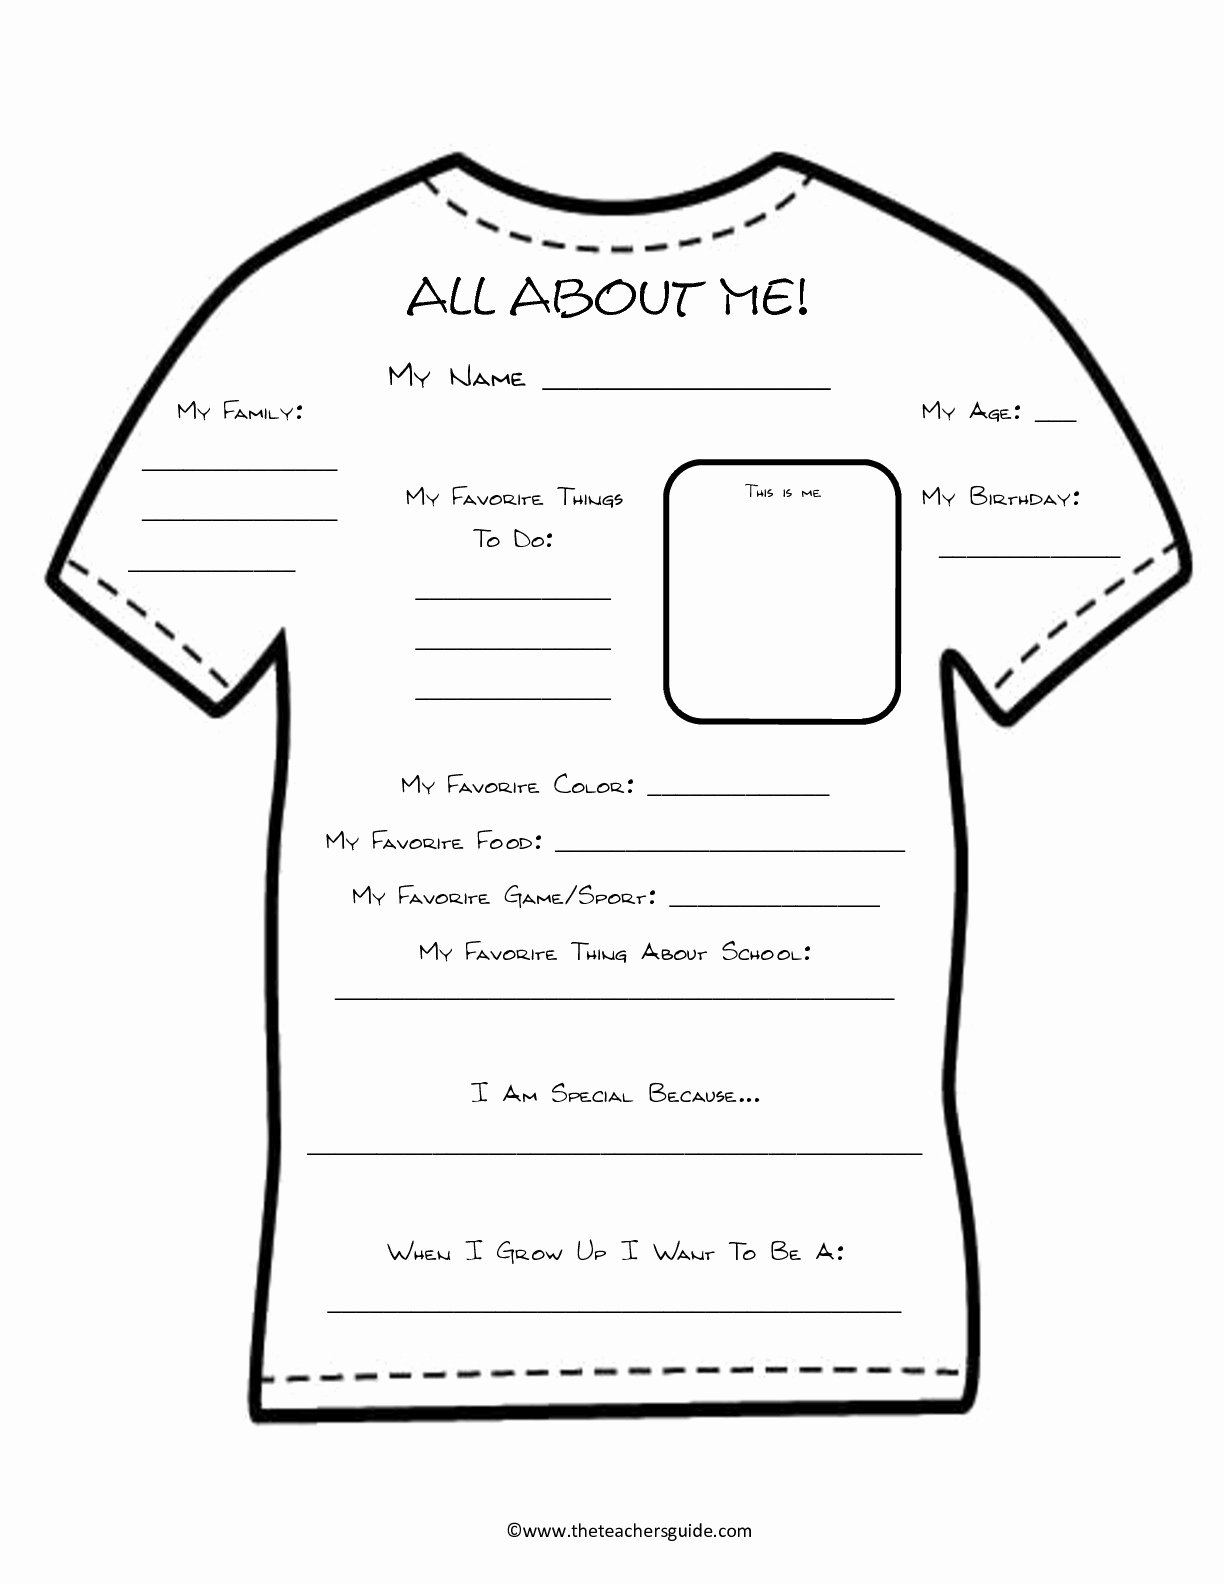 All About Me Worksheet Pdf Inspirational All About Me Worksheetstake the Pen